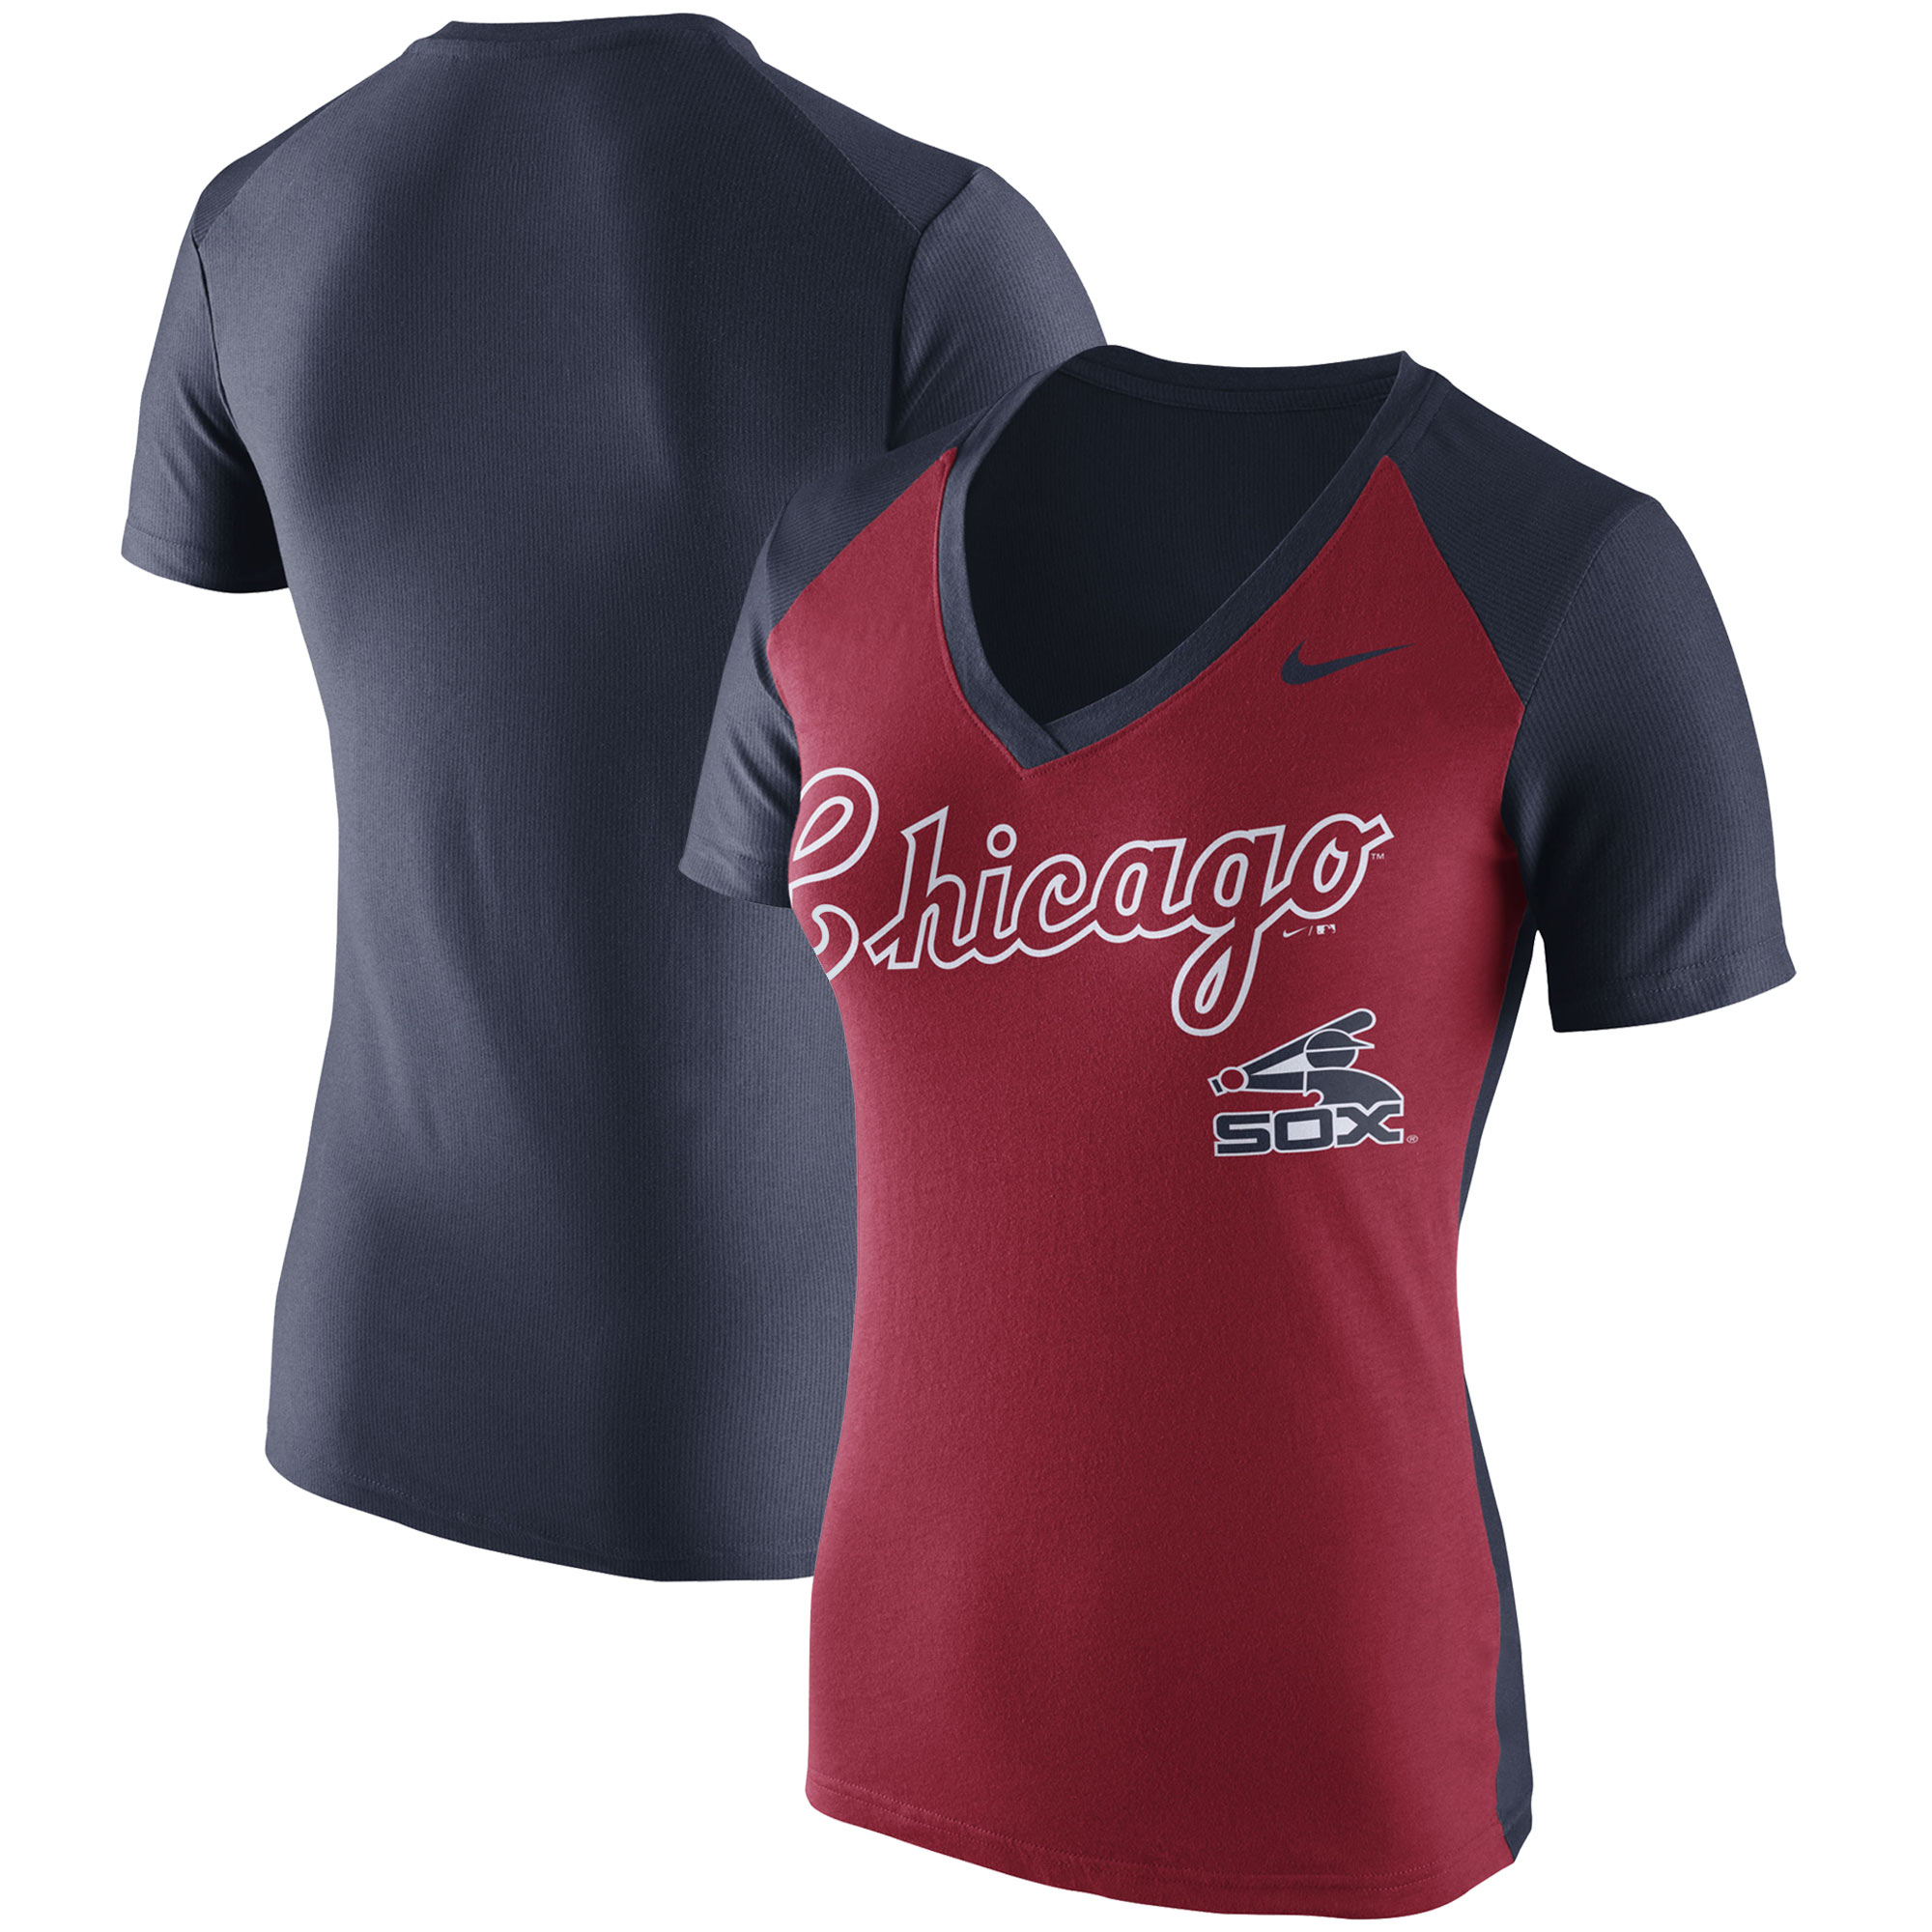 Women's Nike Red Chicago White Sox Cooperstown Collection Throwback Logo V-Neck T-Shirt